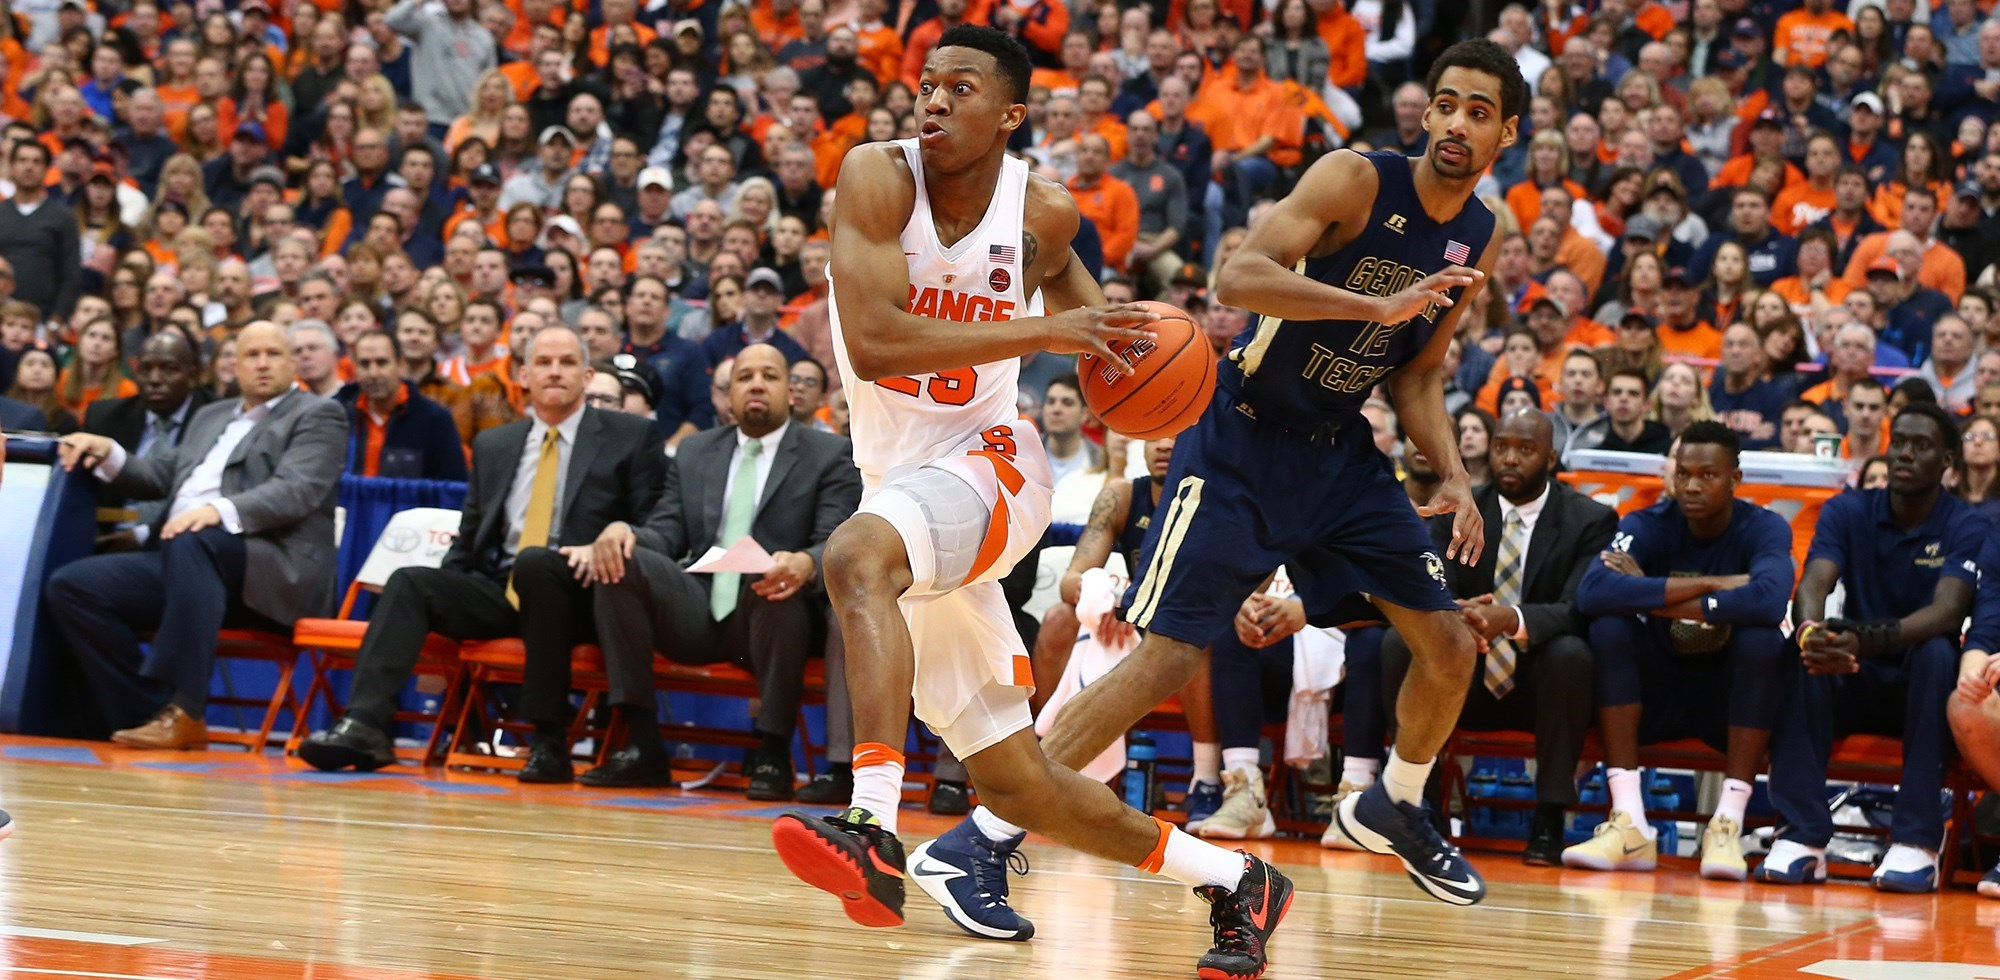 men's basketball single-game tickets go on sale sept. 19 - syracuse